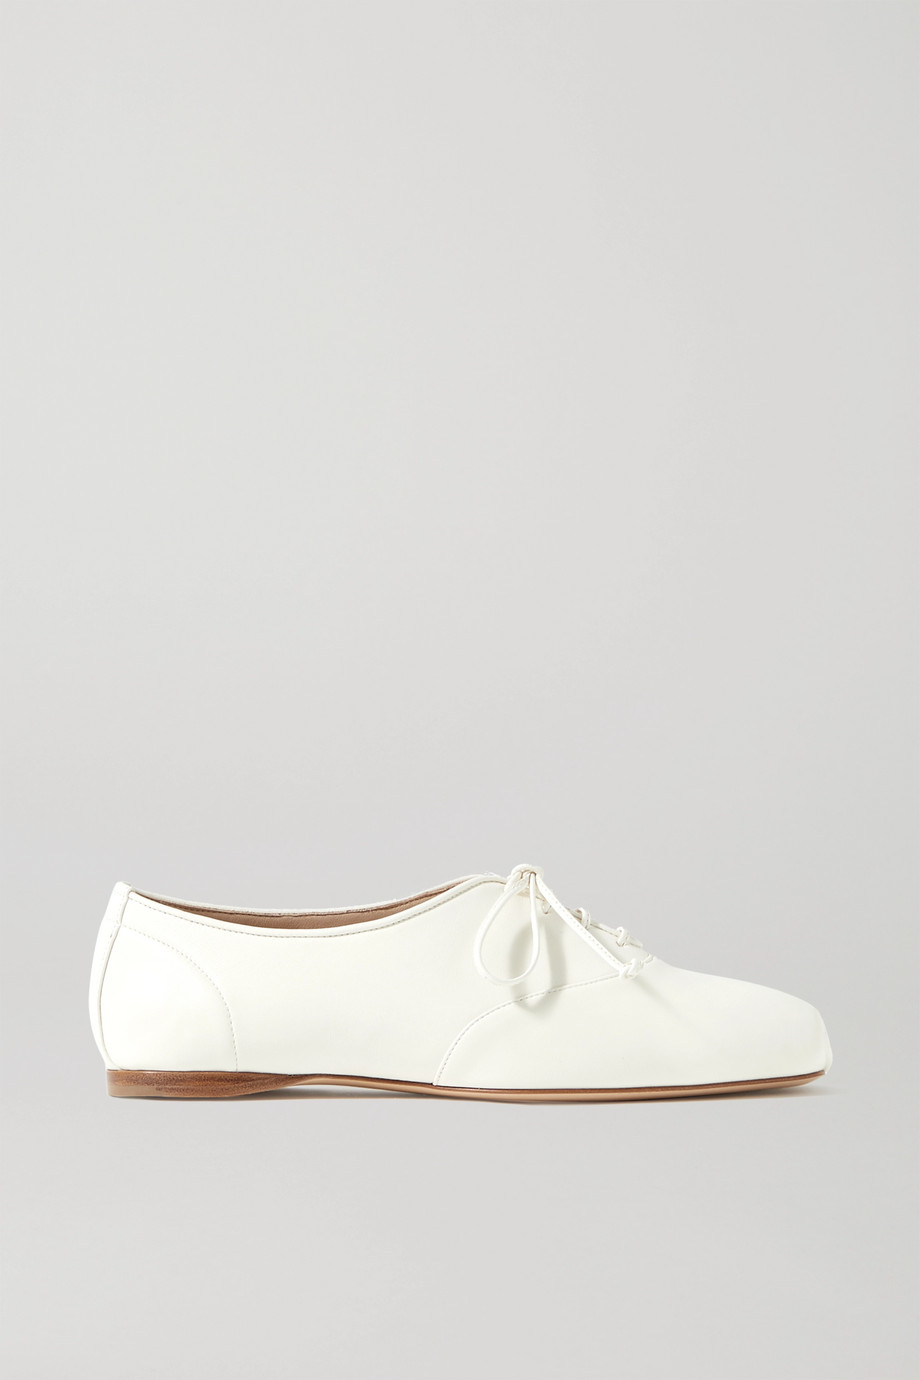 Gabriela Hearst Maya leather lace-up ballet flats